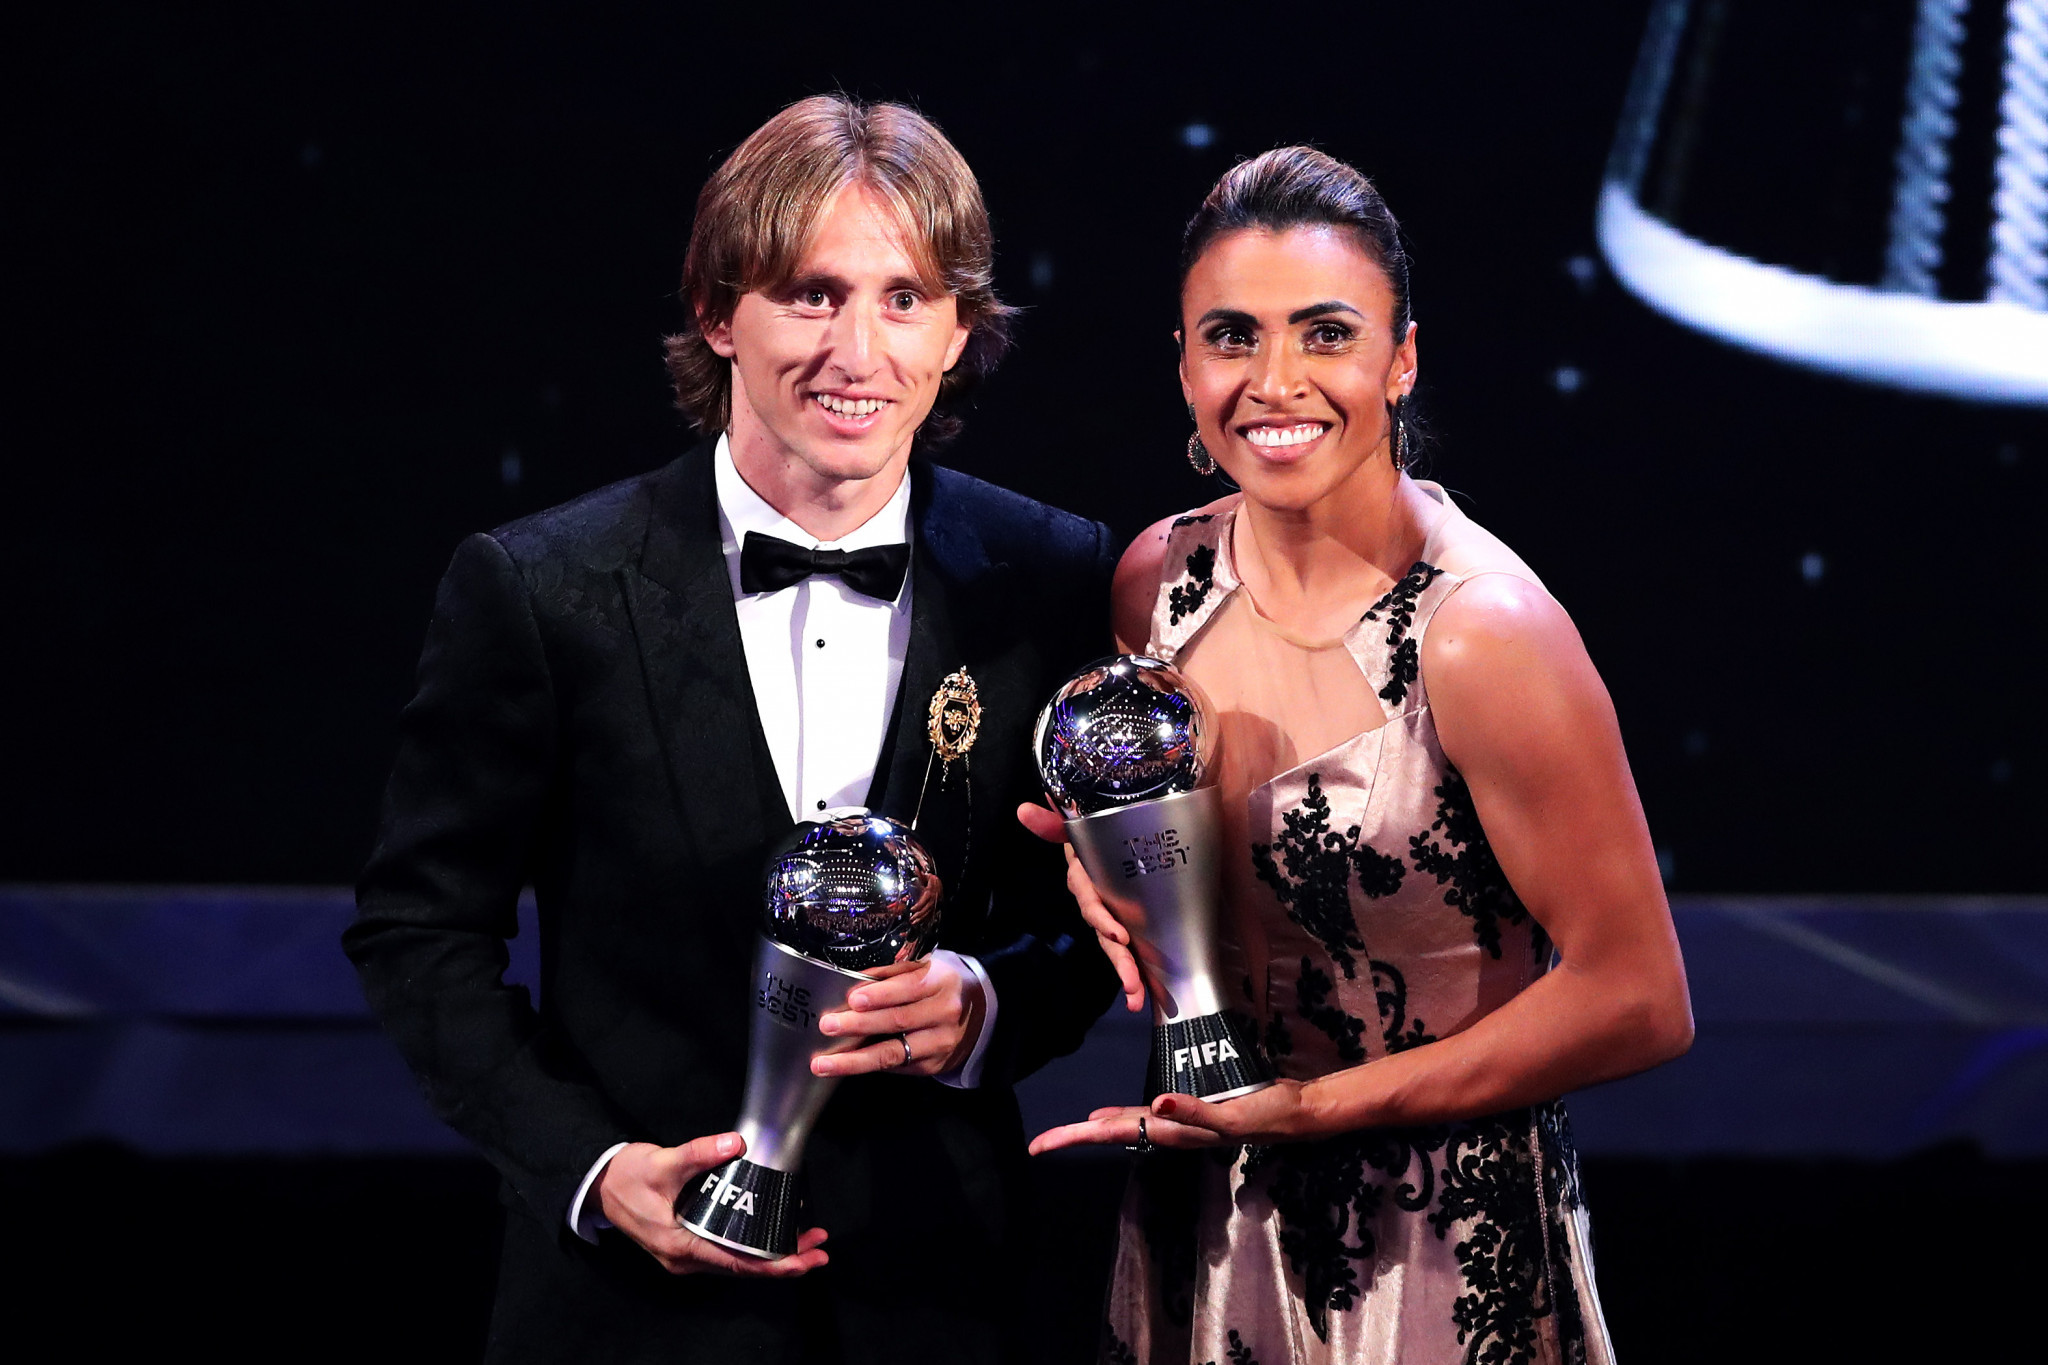 Luka Modric wins Fifa Best Player 2018 Award